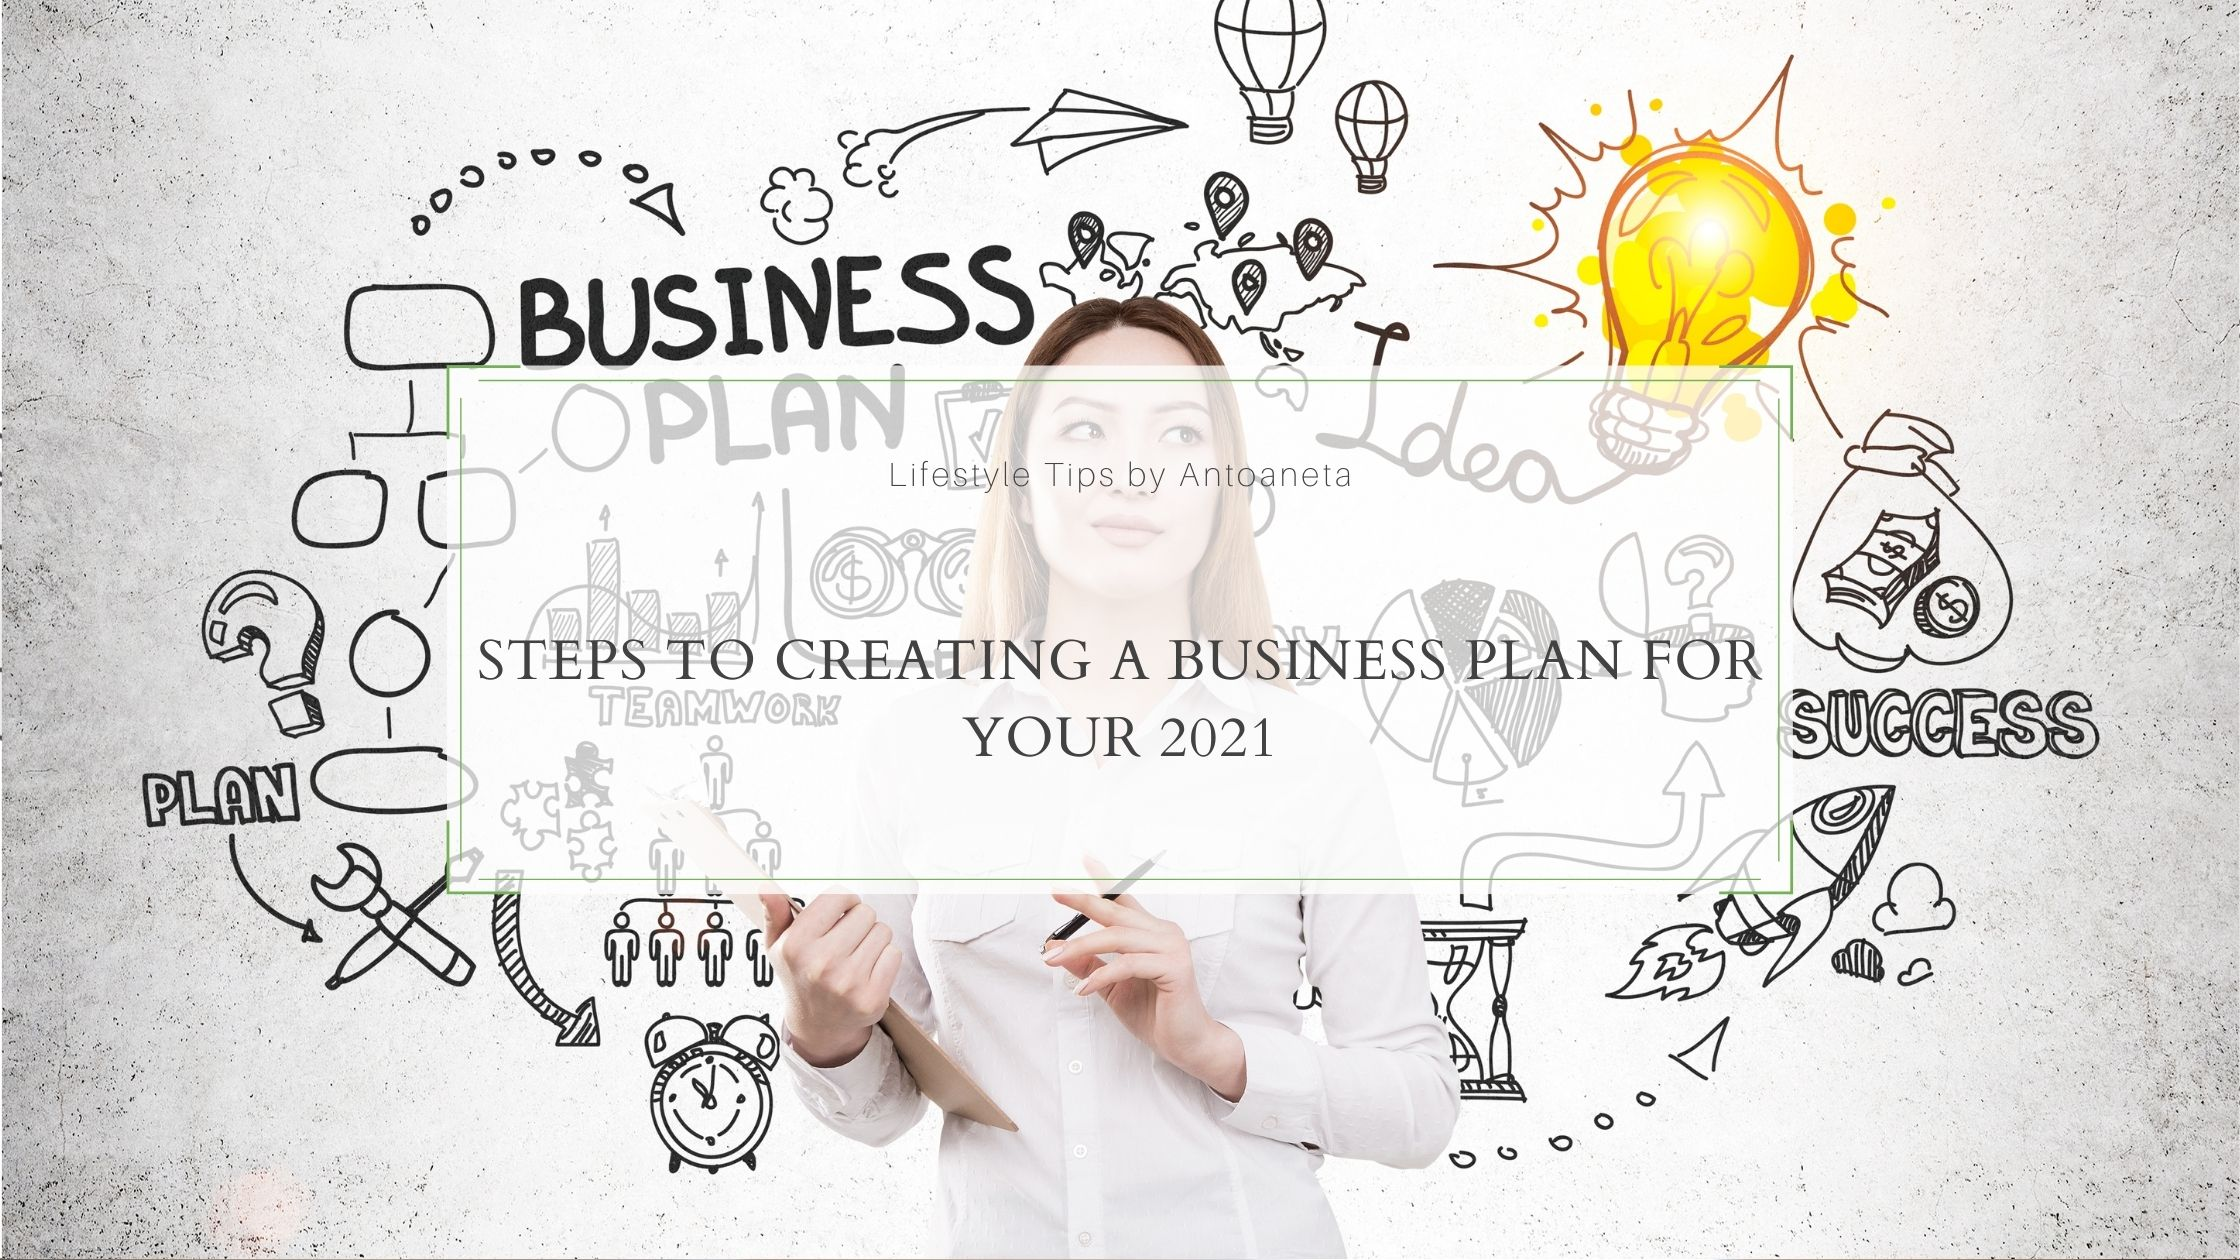 Steps To Creating A Business Plan For Your 2021